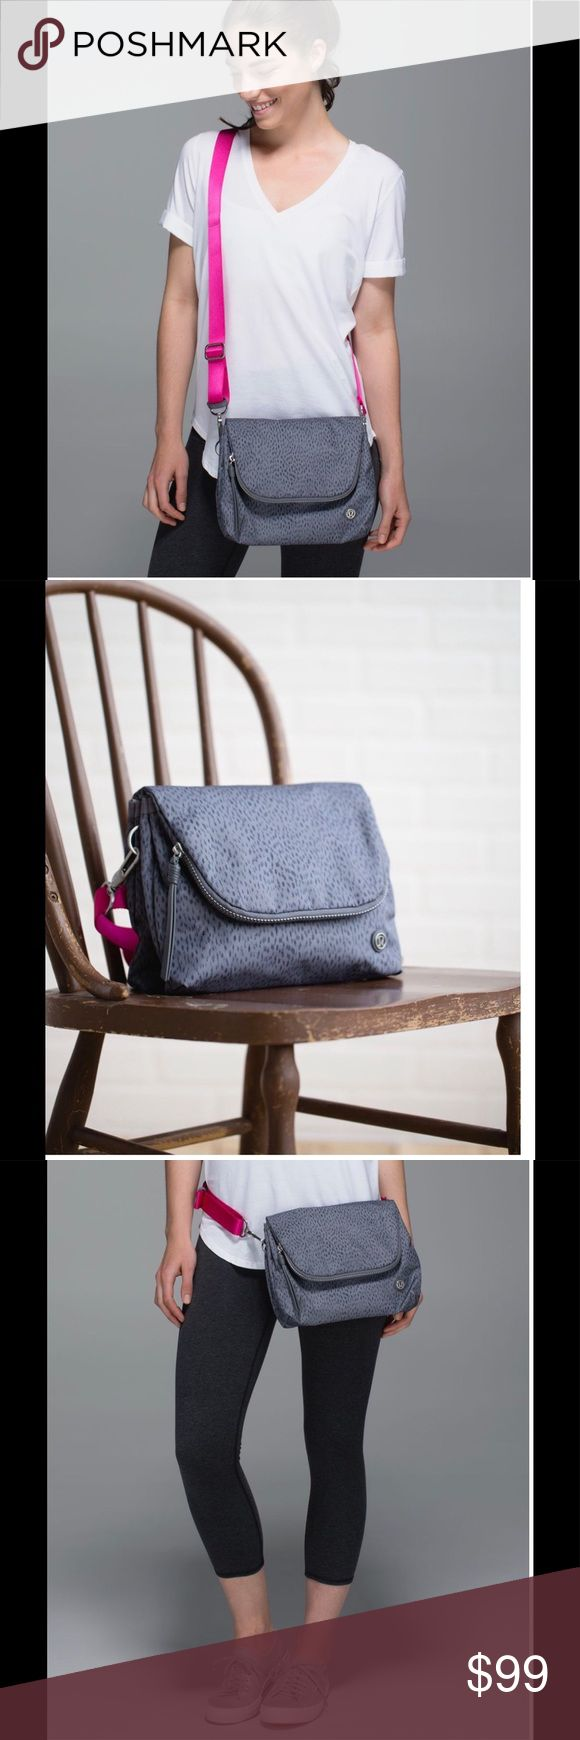 """NWT Lululemon Party Om Bag Great travel bag! Perfect for concerts or festivals too! Durable water-resistant fabric is easy to wipe clean. Multiple pouches, a slip pocket, a large zipper compartment, and back pocket help keep your essentials safely stowed. Tested to hold 22kg (50lbs). Dimensions: 20cm x 24cm x 8cm (8"""" x 9.5"""" x 3""""). Plenty of room even for larger phones too - one of the pics shows an iPhone 6 Plus with case in the phone slot. Color: Dottie dash slate black. lululemon athletica…"""